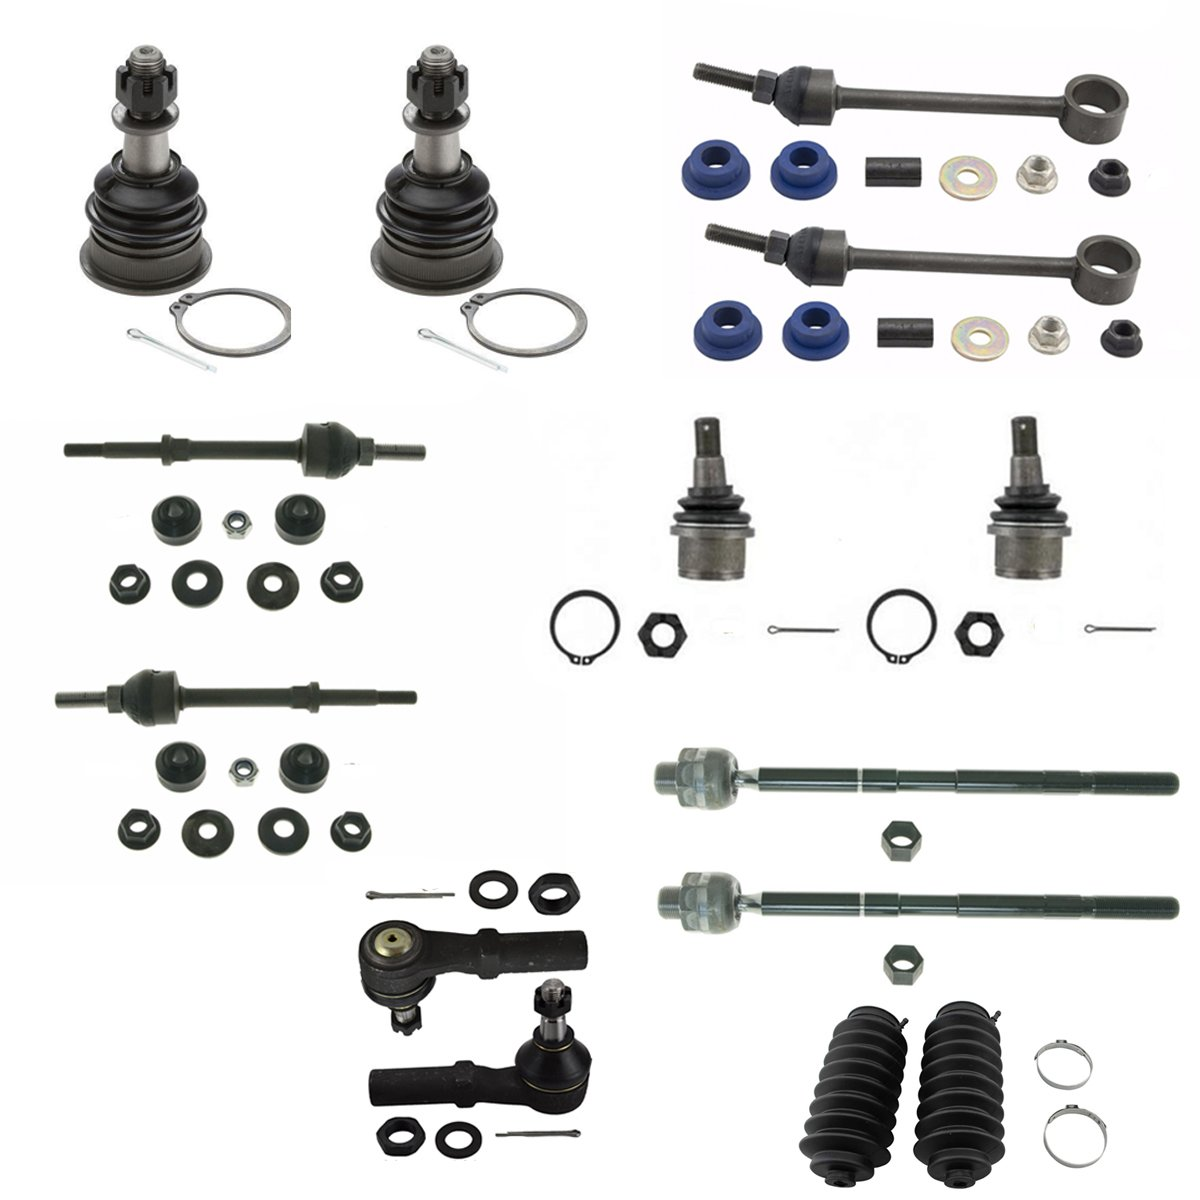 Cheap Ram Axle, find Ram Axle deals on line at Alibaba.com